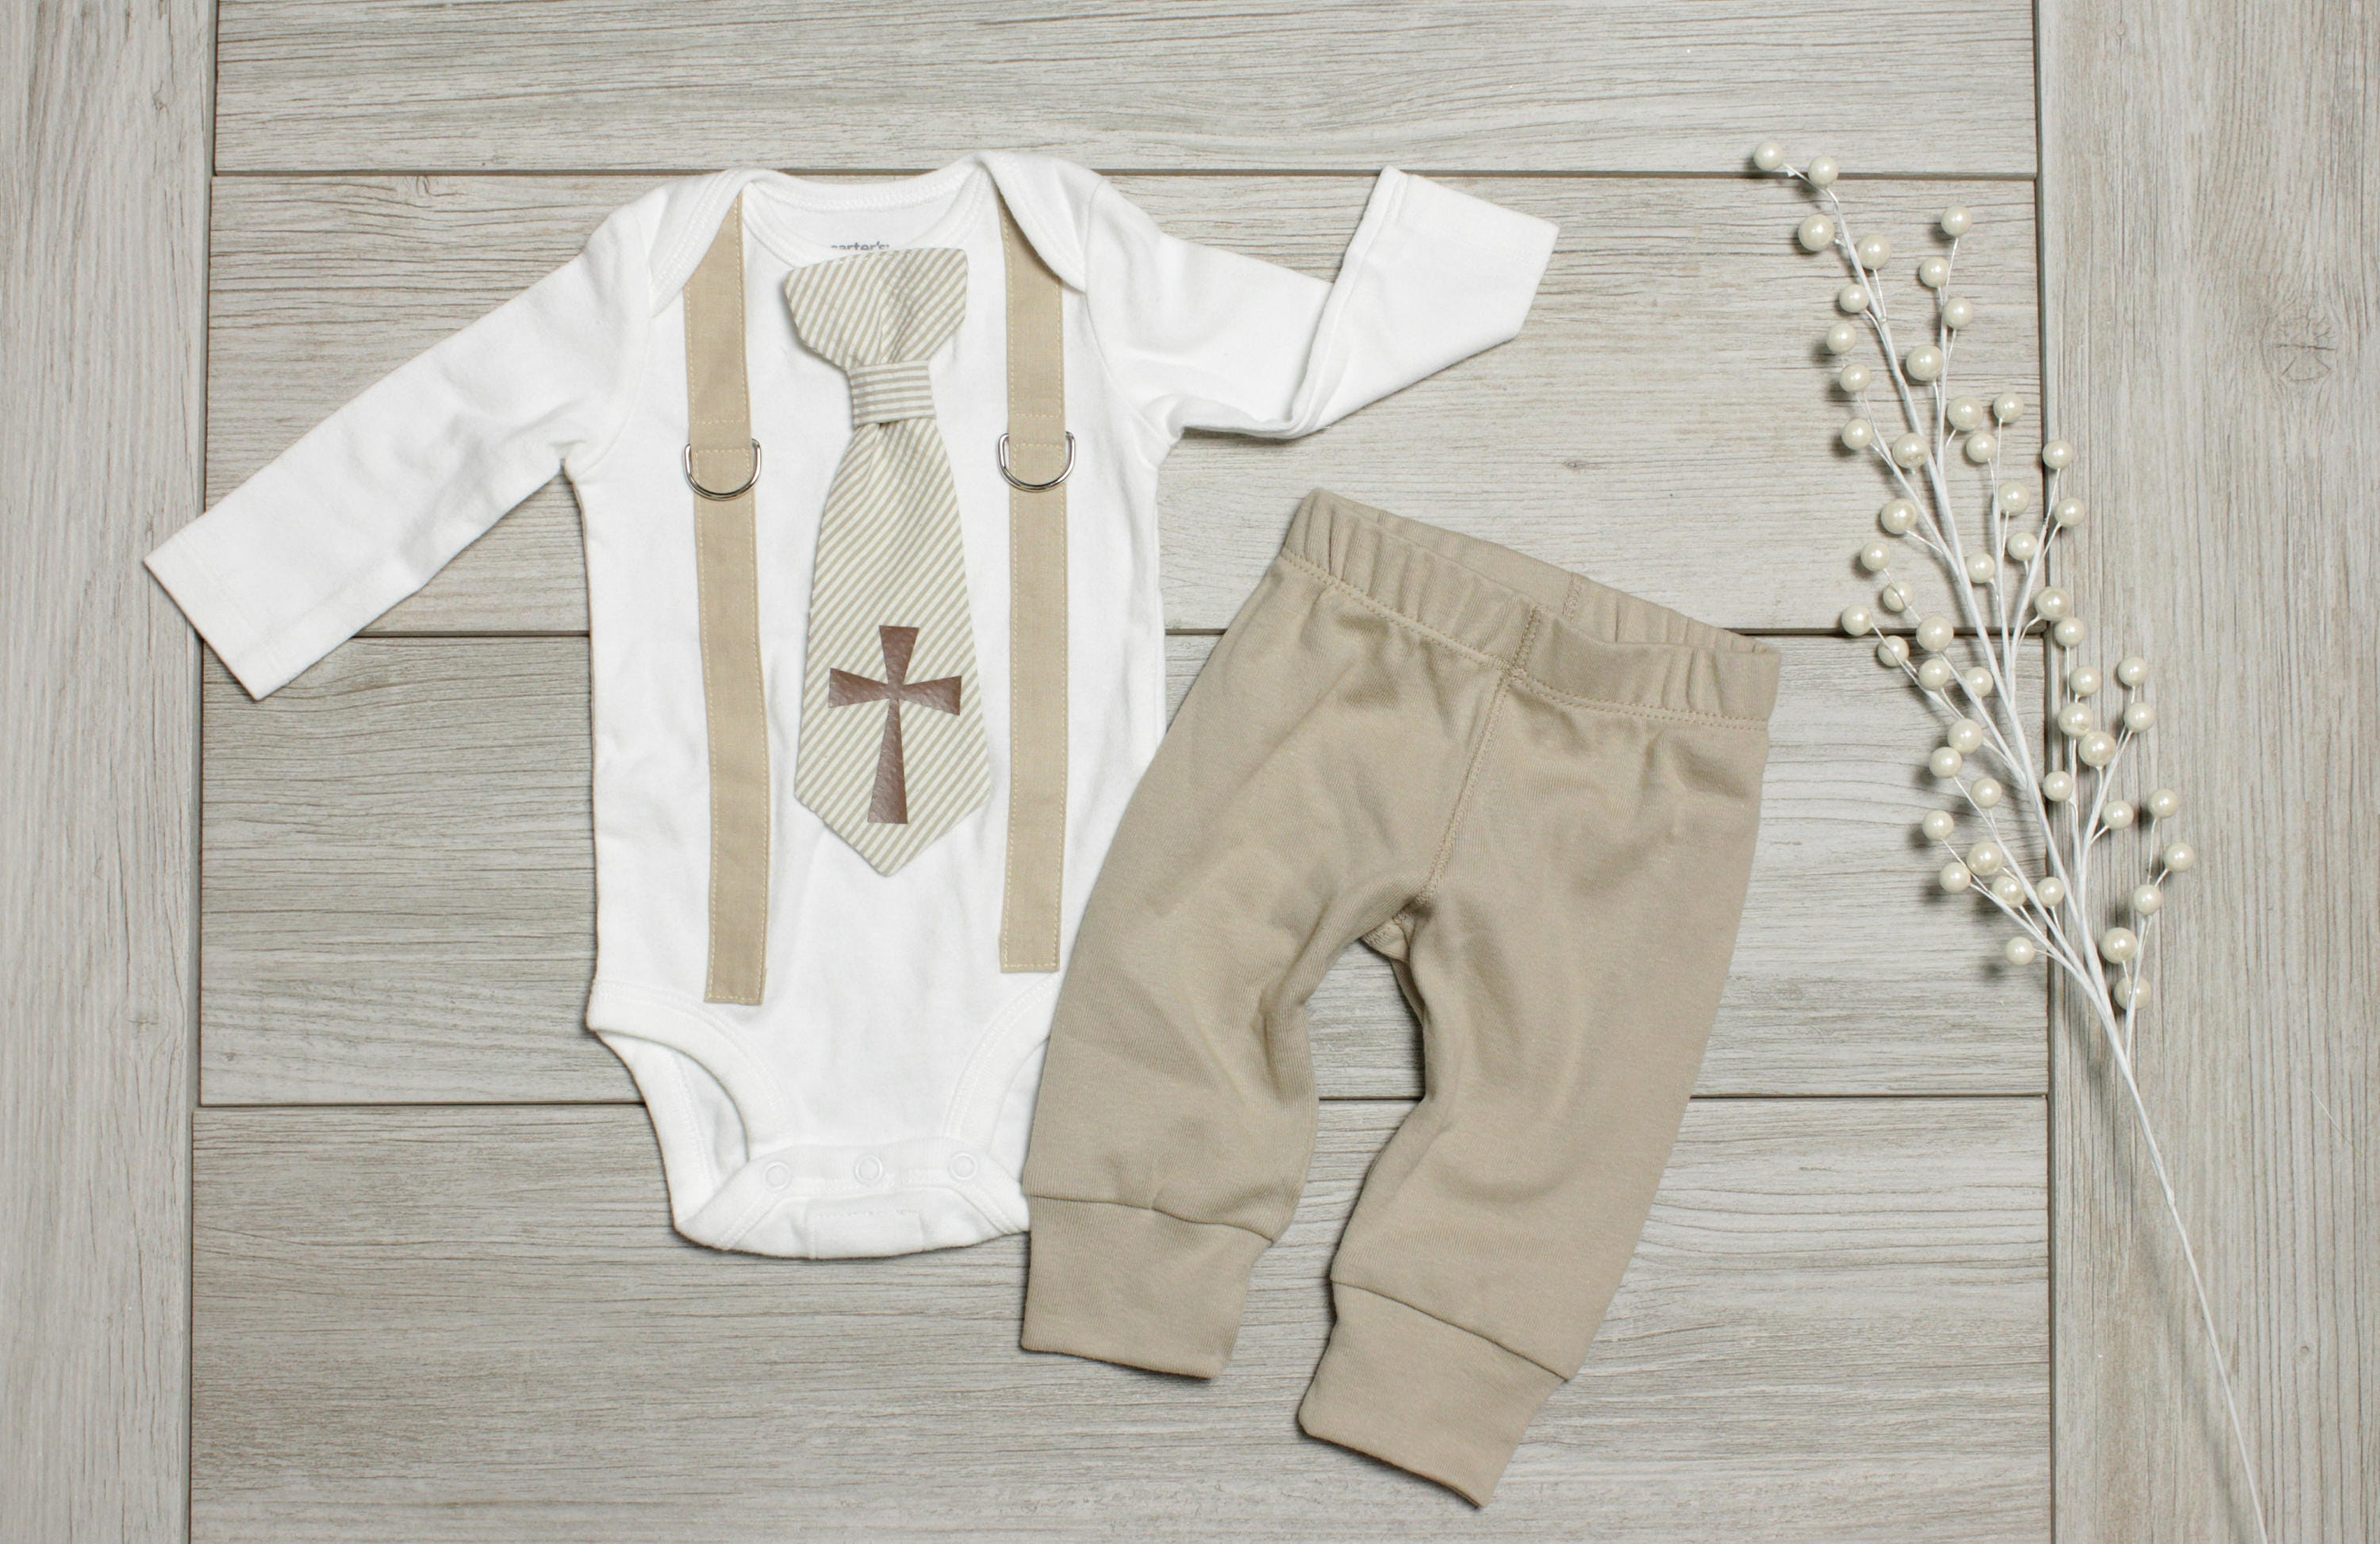 Tan Baptism Outfit Boy. Baby Boy Outfit. Khaki Brown. Baptism | Etsy